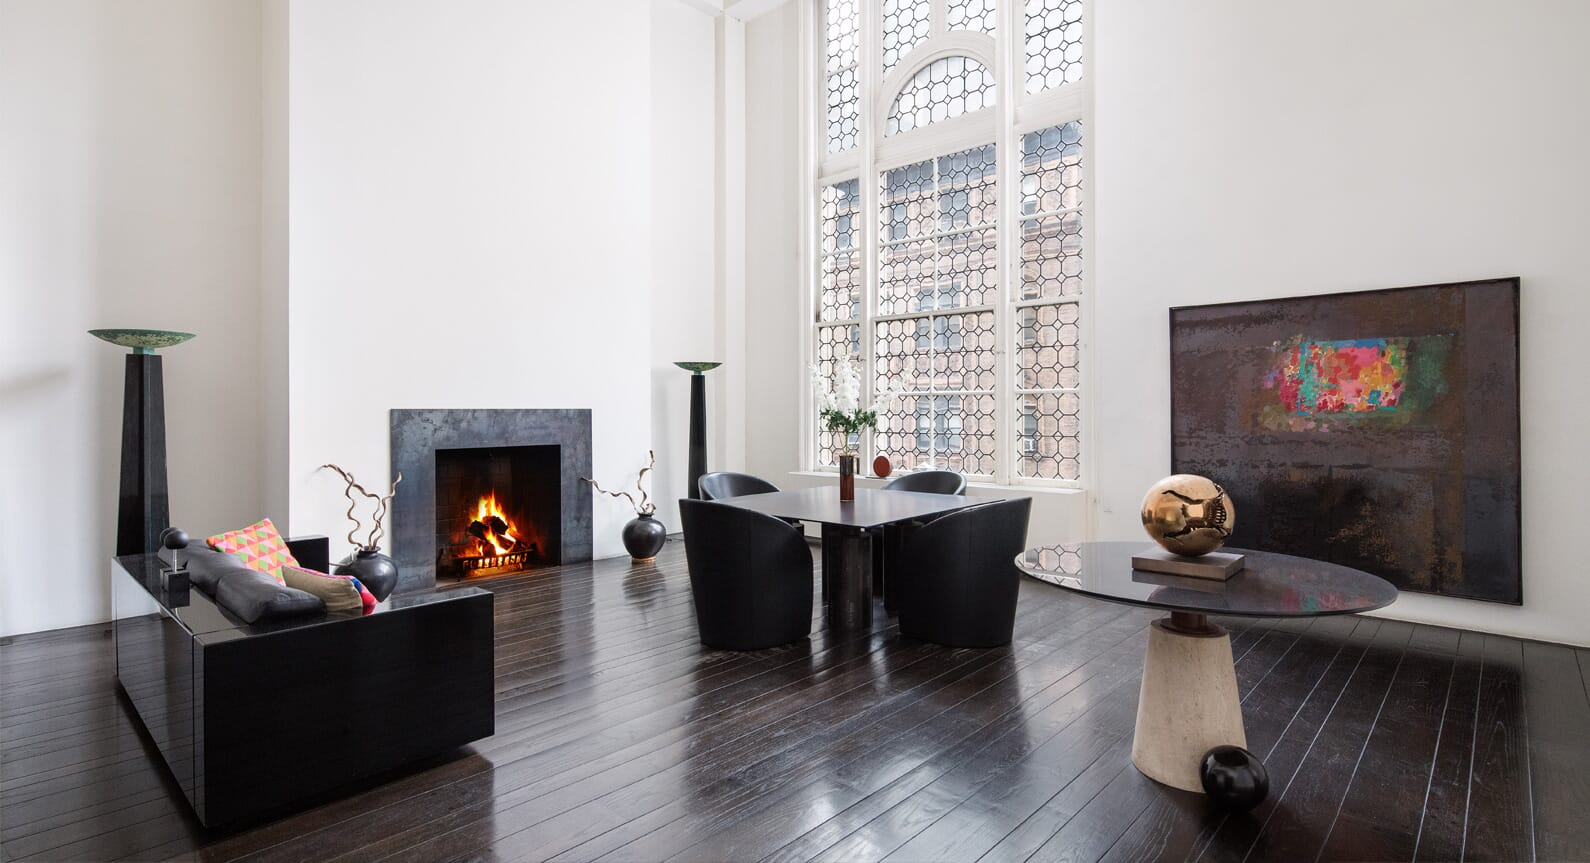 Massimo and Lella Vignelli's New York Apartment Is Up For Sale